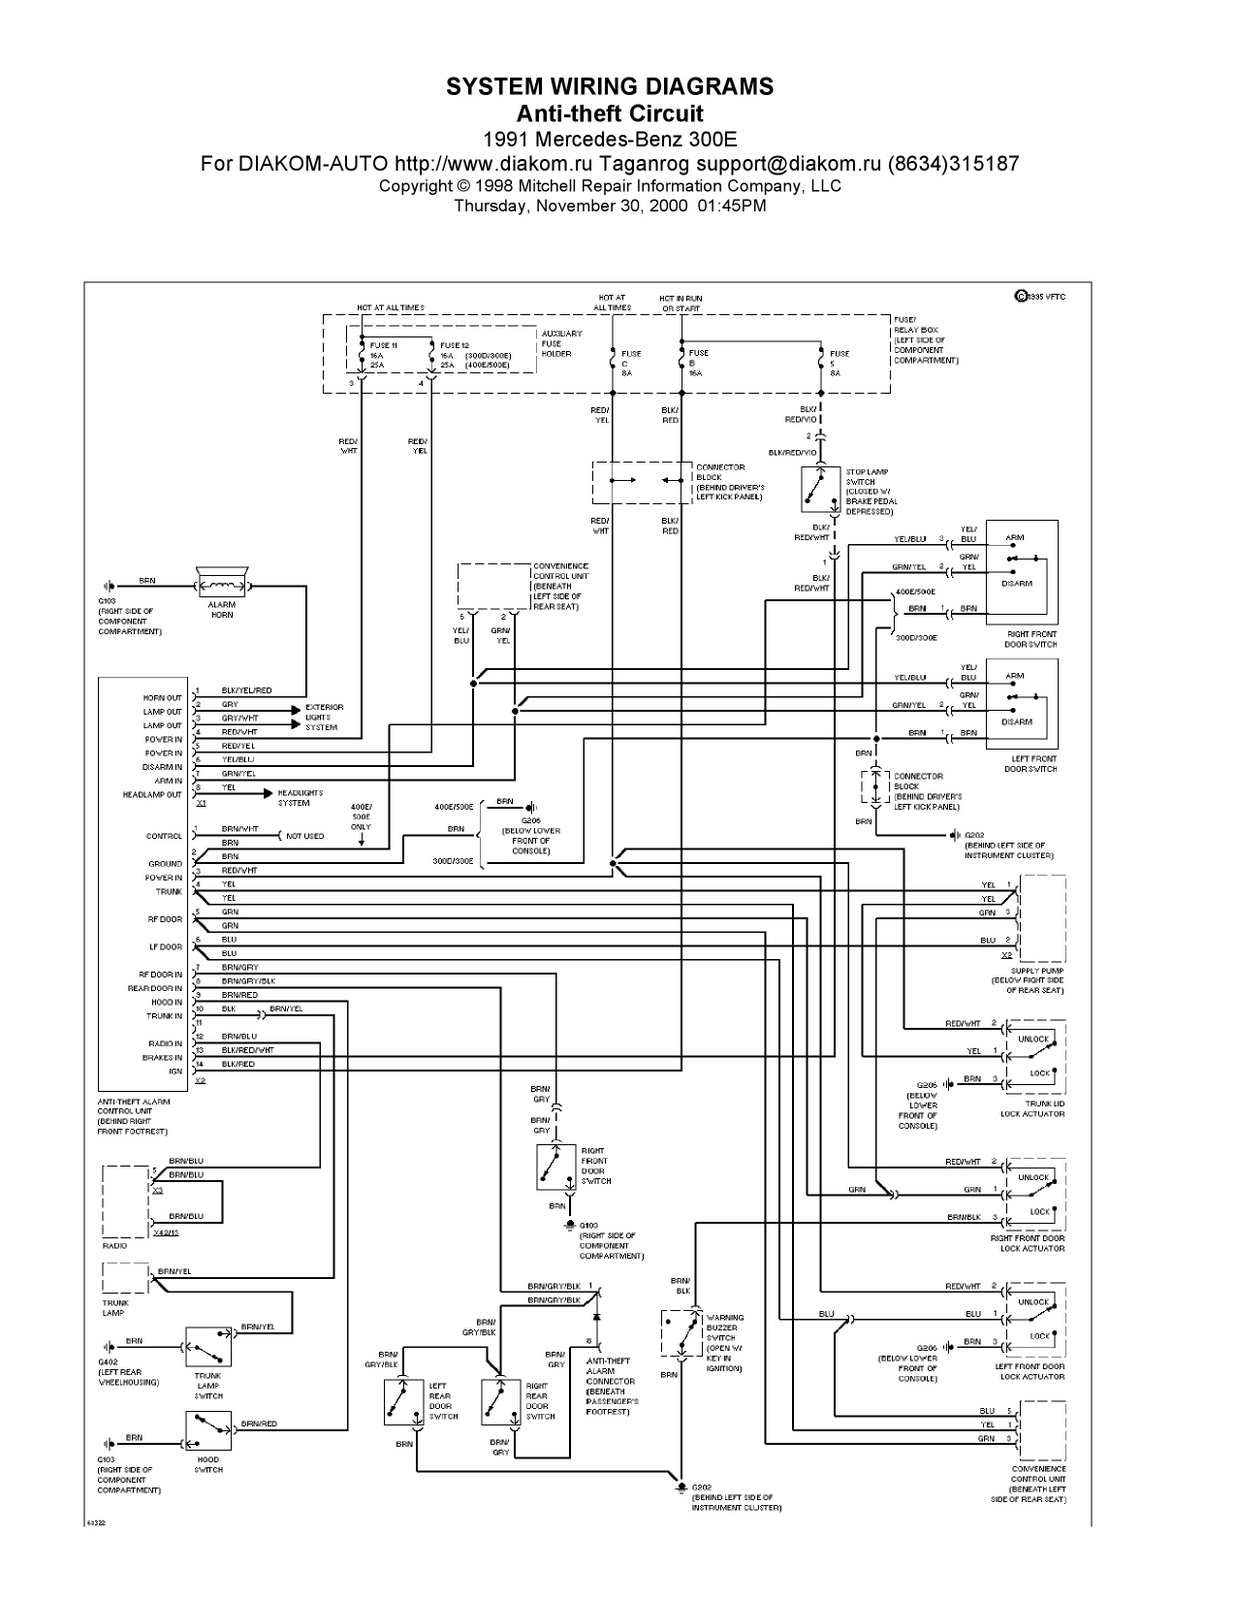 mercedes benz engine schematics wiring diagram name mb c320 wiring diagram [ 1236 x 1600 Pixel ]